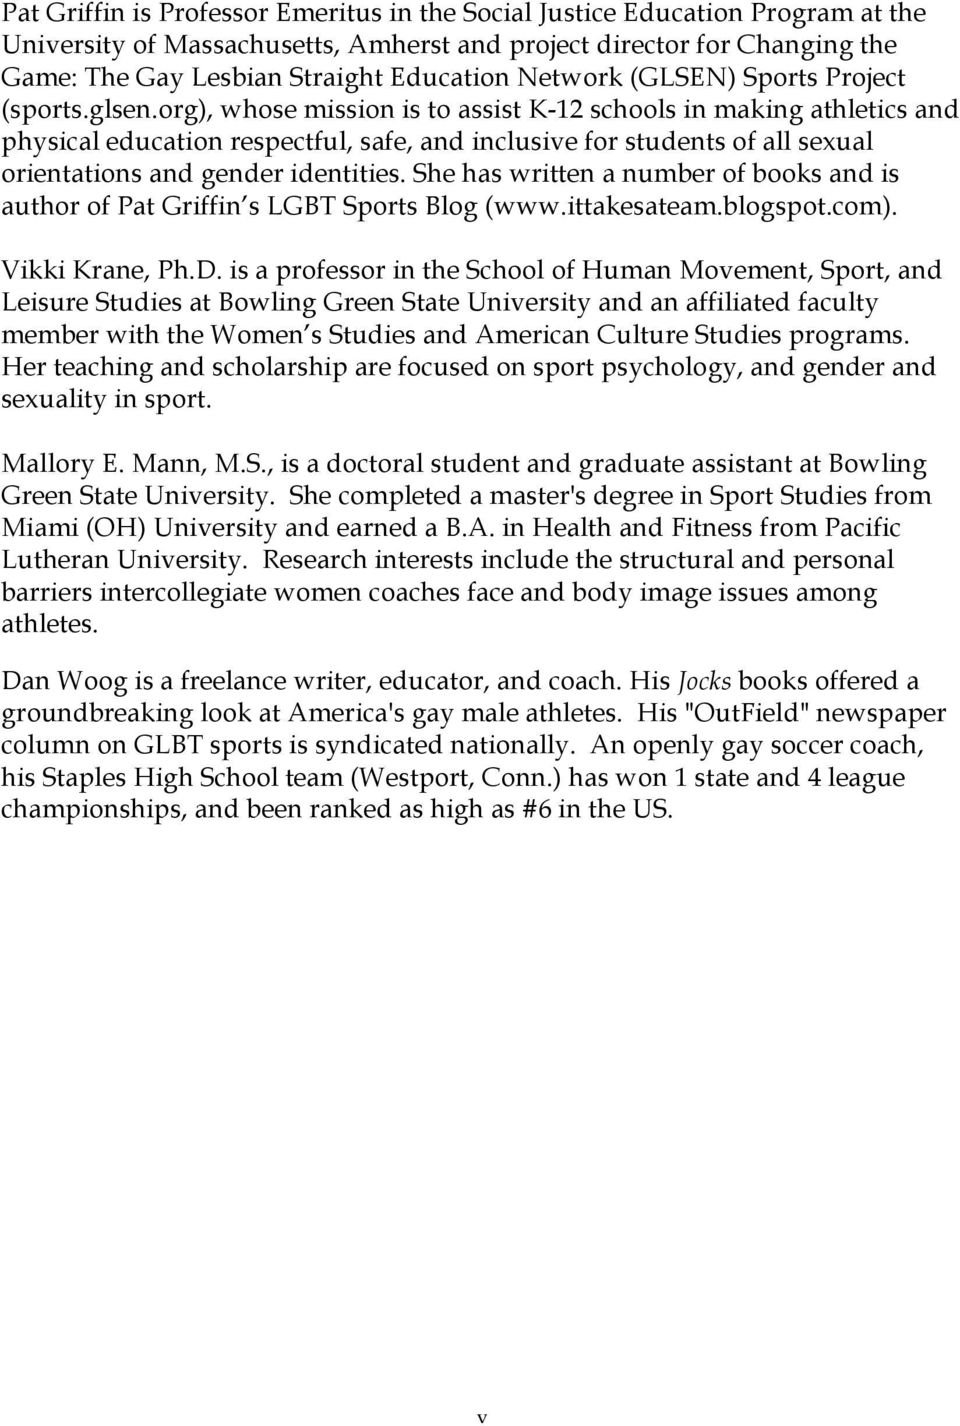 sexual orientation and gender identity in sport essays from org whose mission is to assist k 12 schools in making athletics and